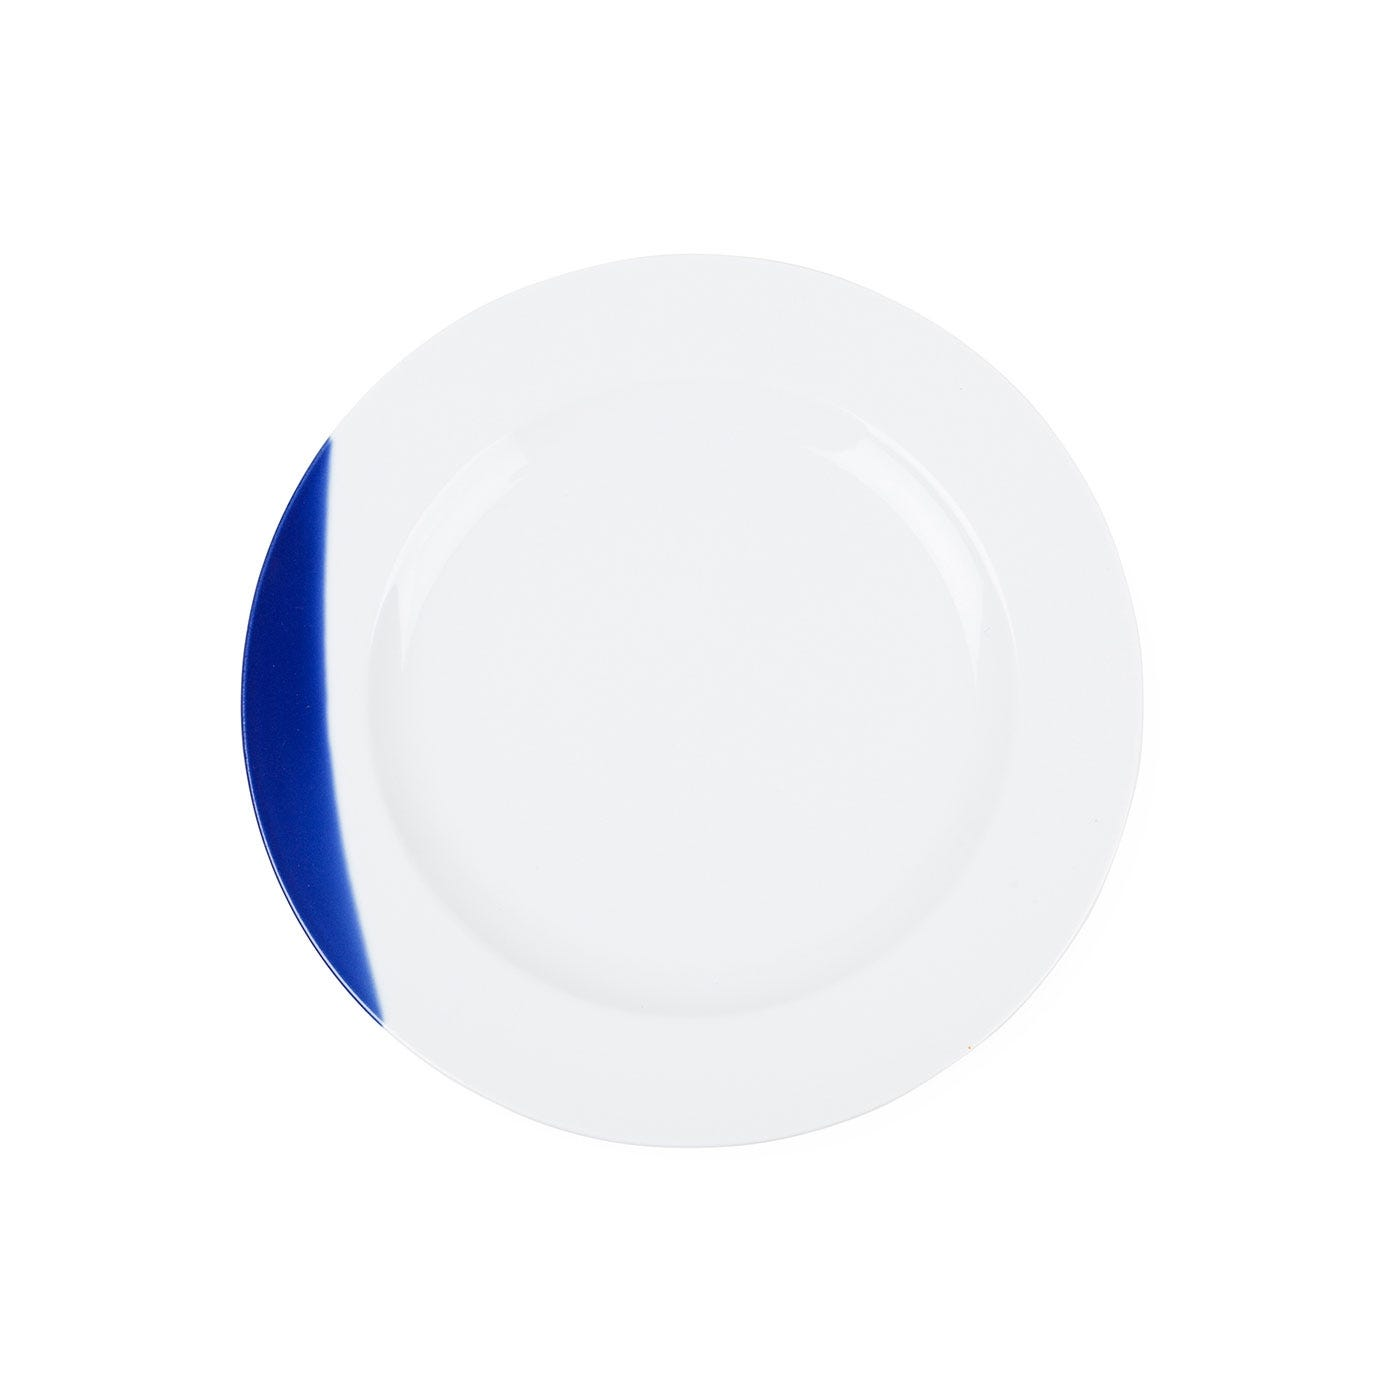 Touch of Blue Charger Plate